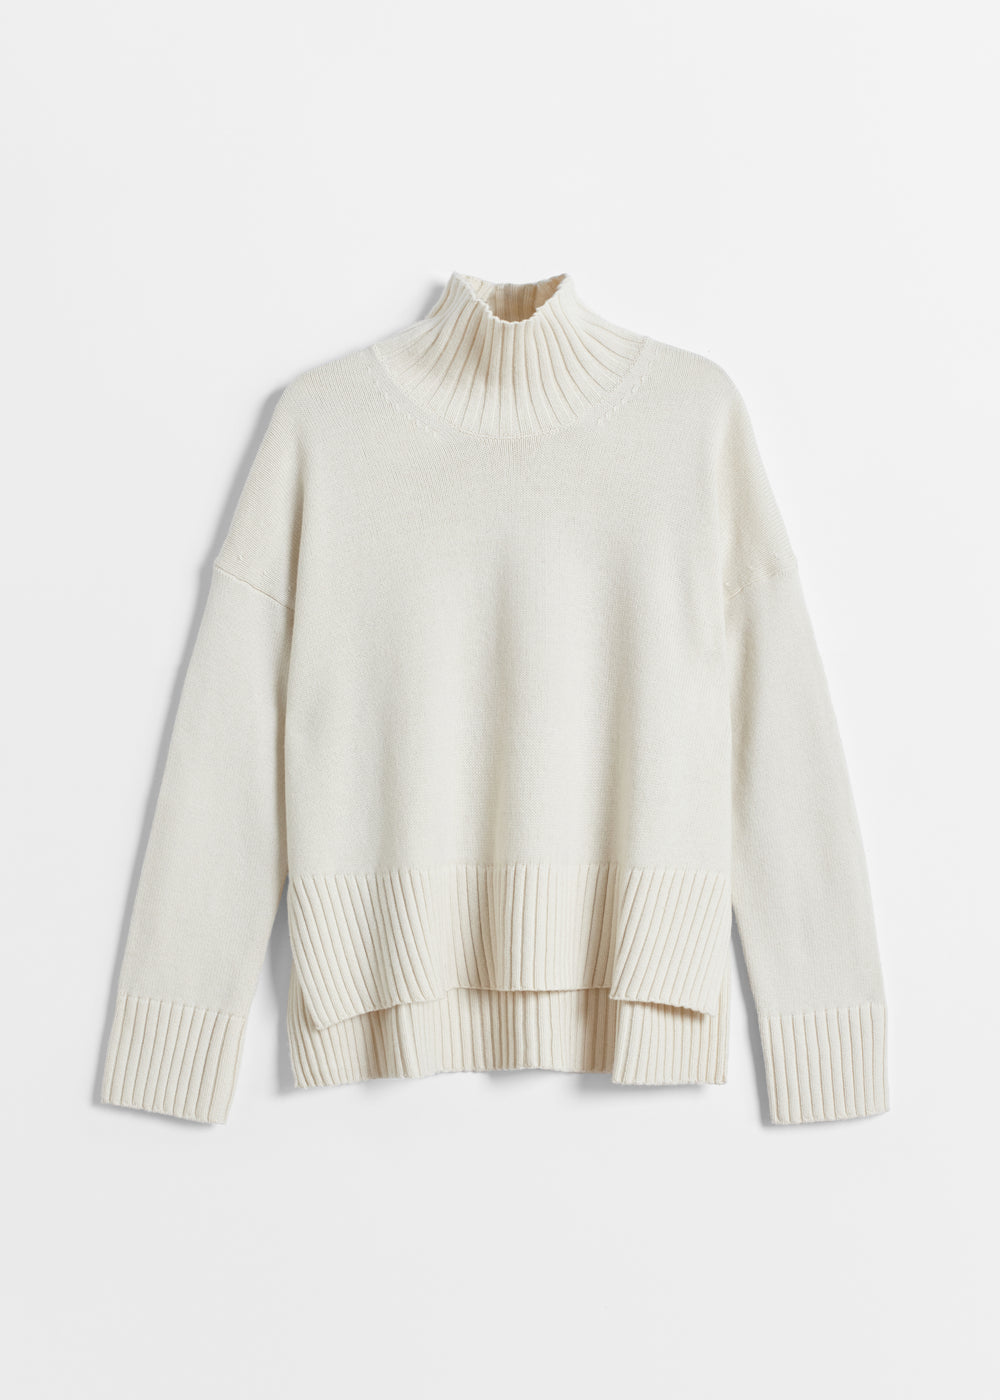 High Neck Sweater in Wool Cashmere - Black in Ivory by Co Collections